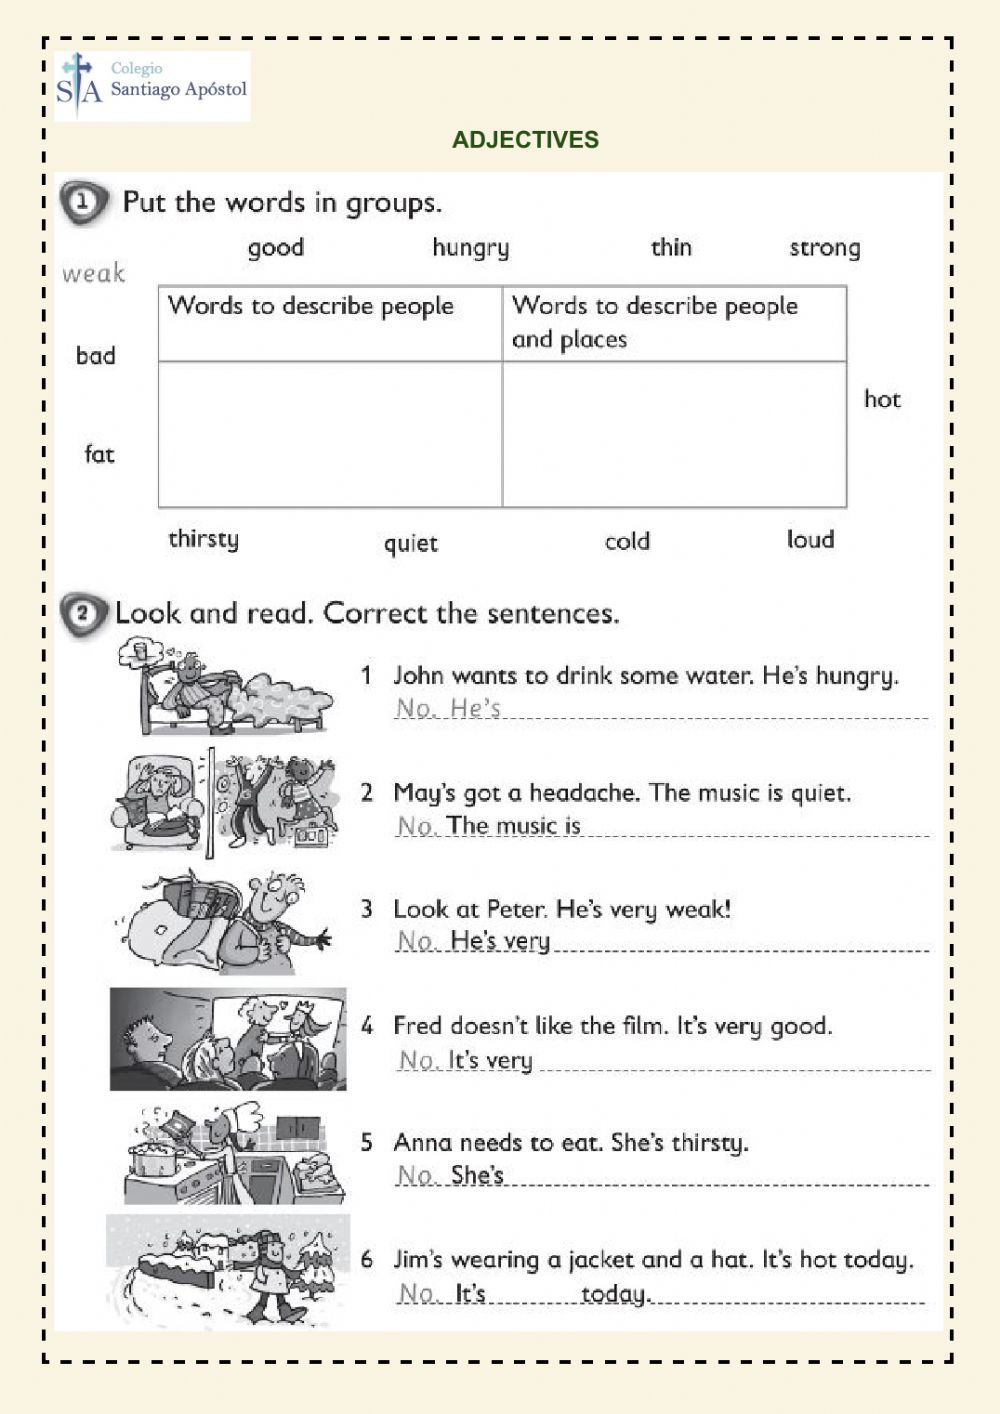 medium resolution of Adjectives online exercise for 3rd grade